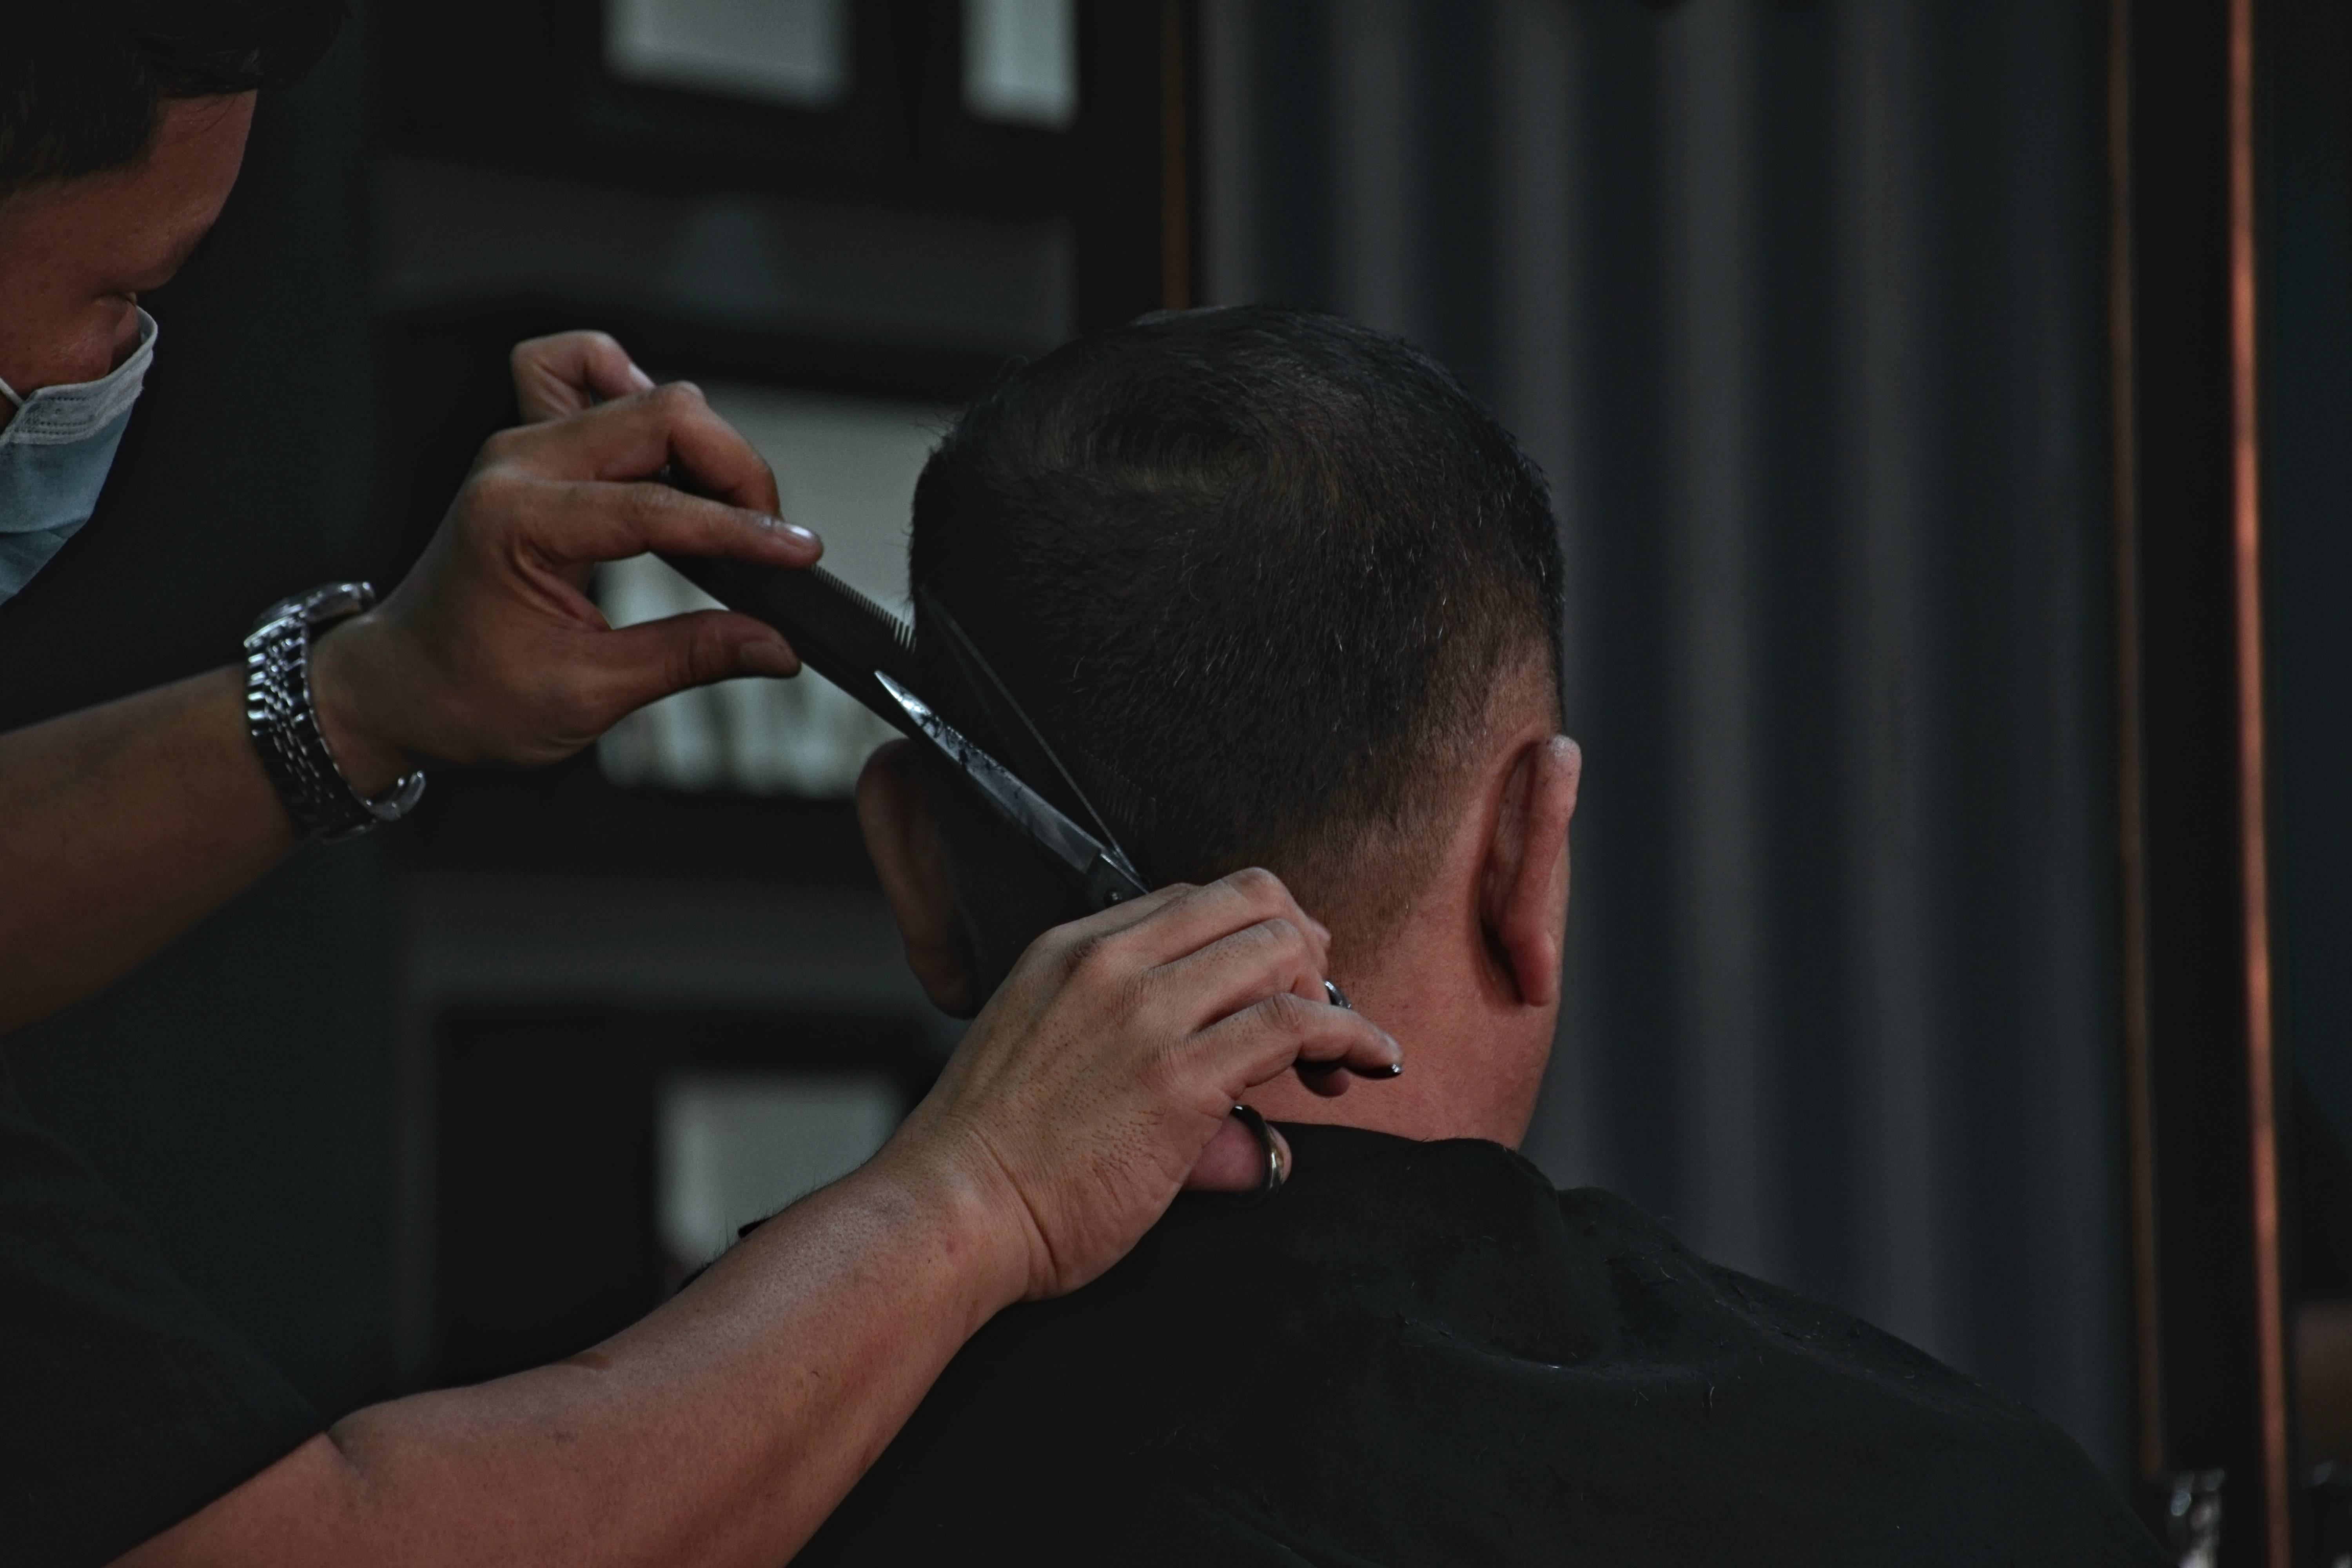 Safeguard your retirement whether you're a barber, plumber, contractor, or cleaner.